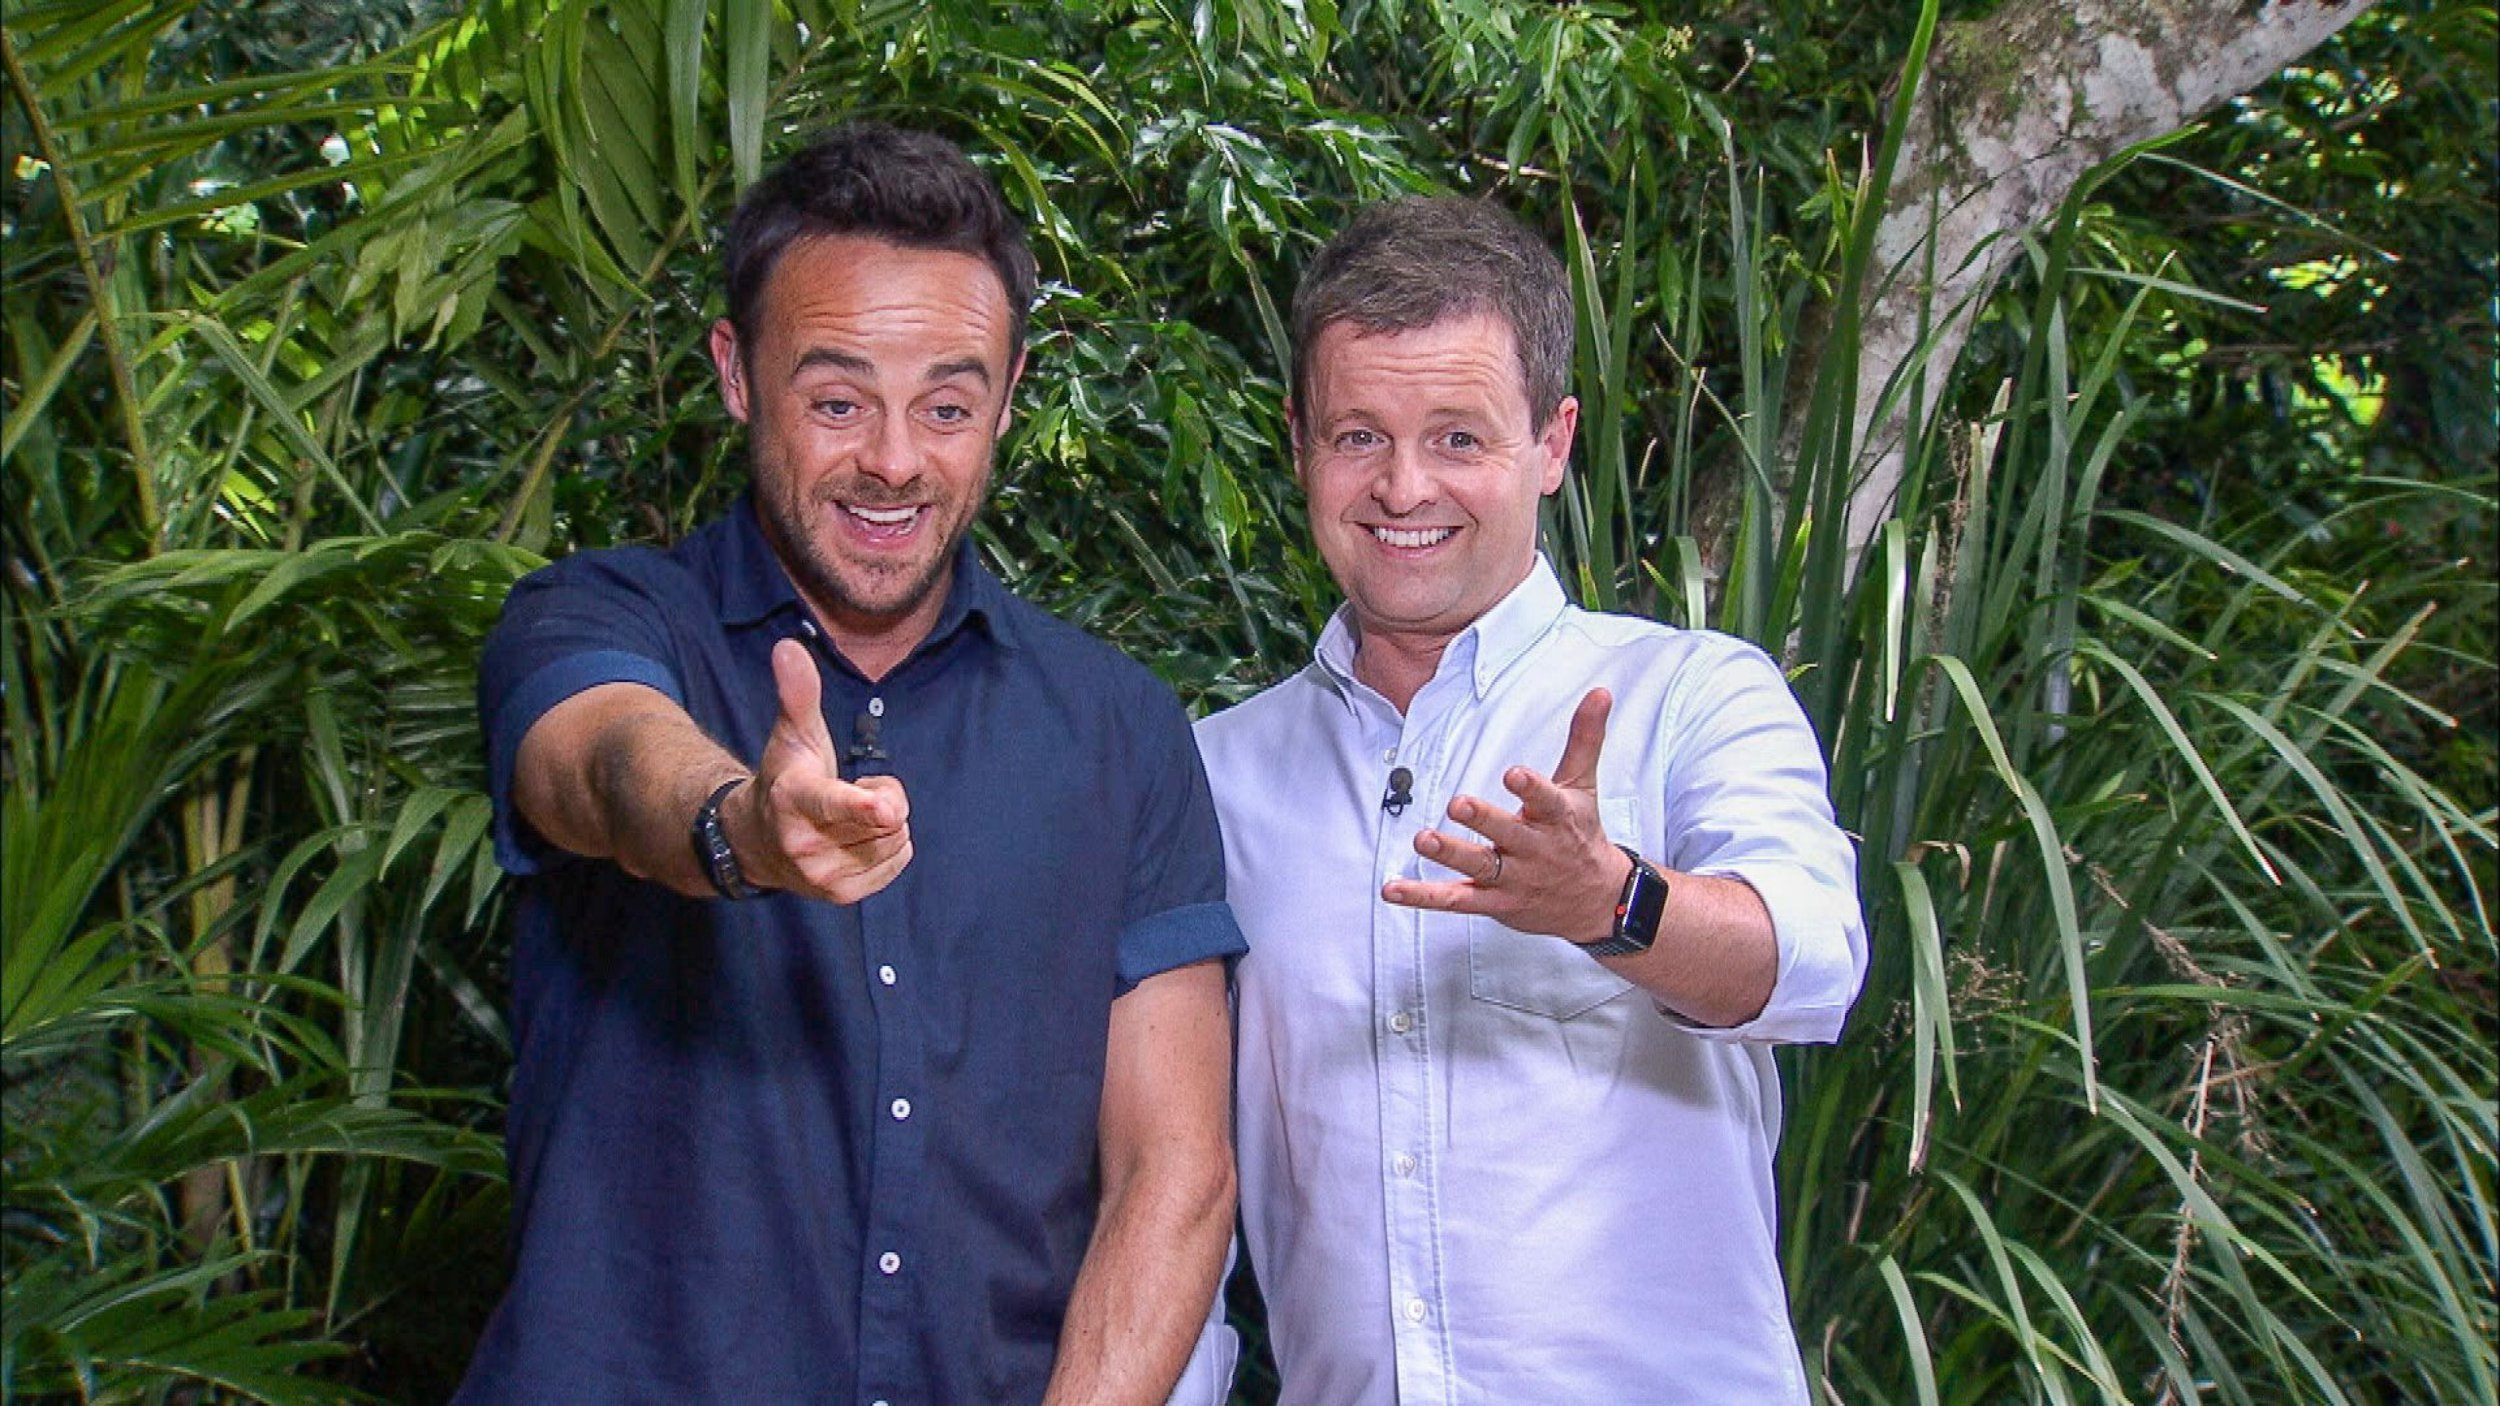 I'm A Celebrity bosses confirm Ant McPartlin's return and insist he will keep up Holly Willoughby's ratings